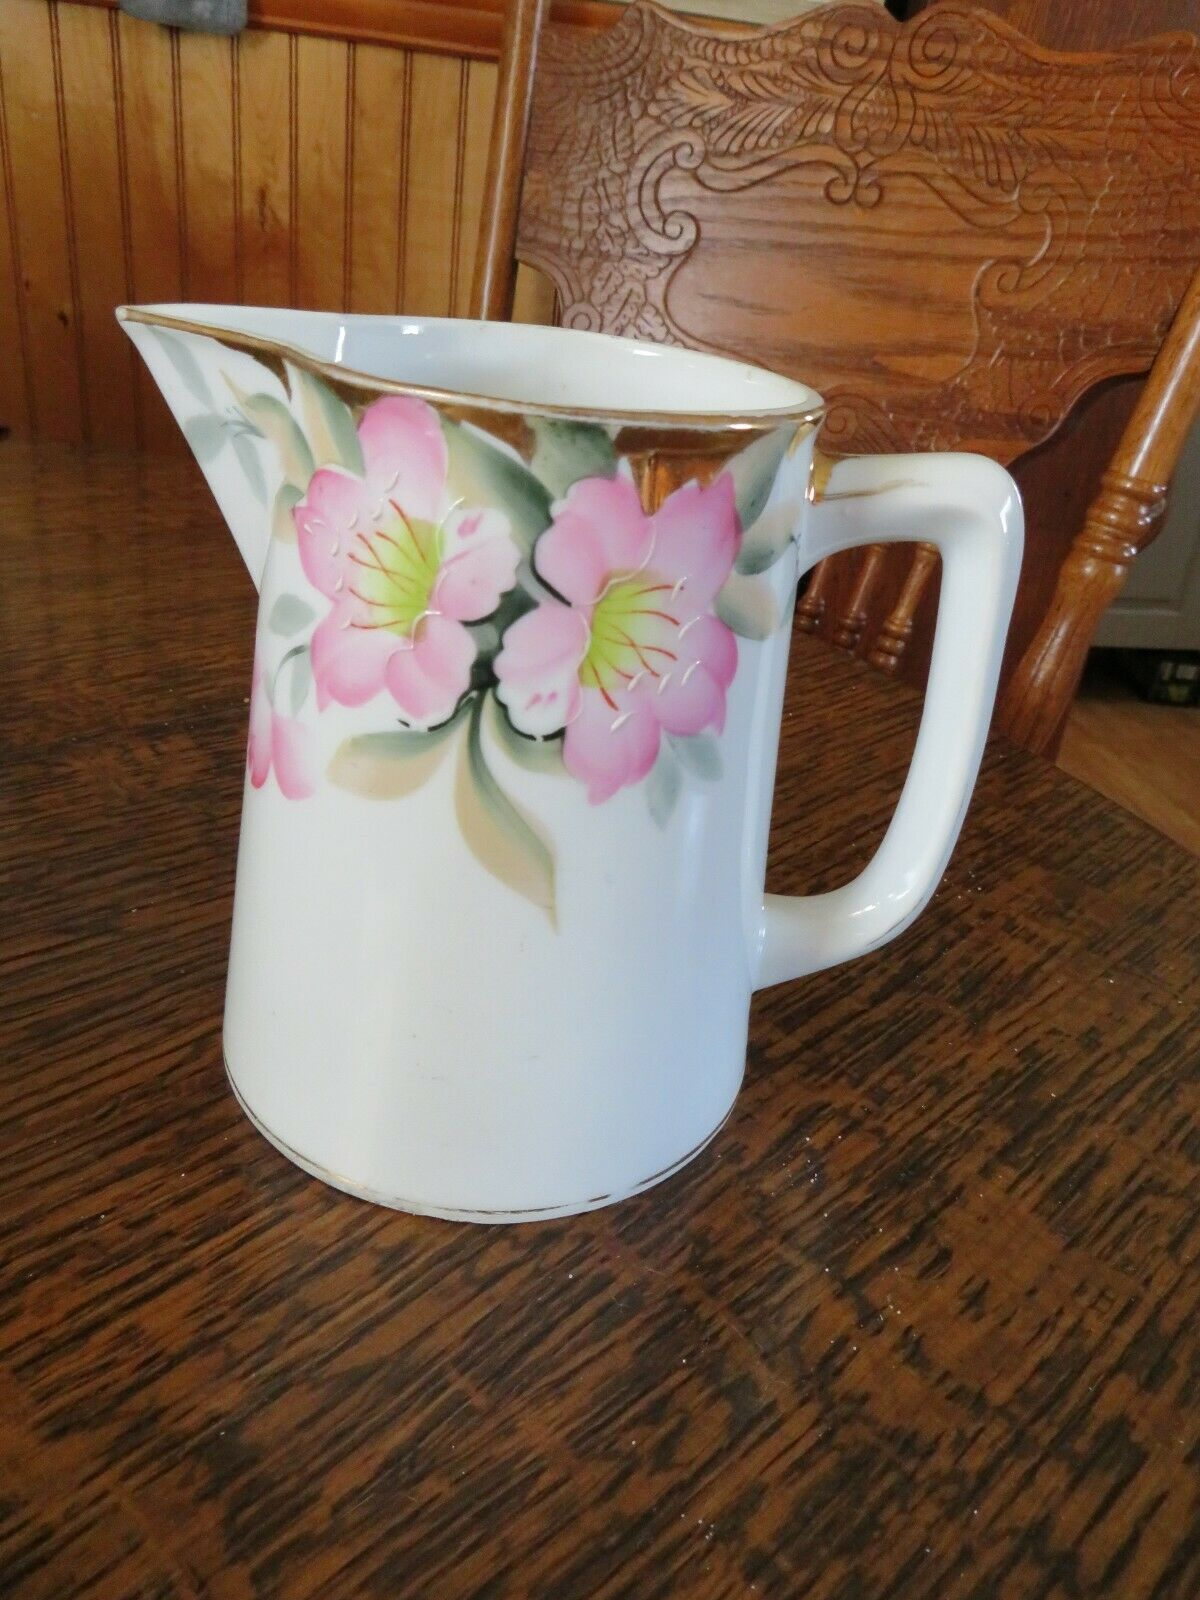 Vintage Noritake Pitcher, Azalea Pattern 5 3/4 Tall. No Chips, Cracks, Crazing  - $12.00